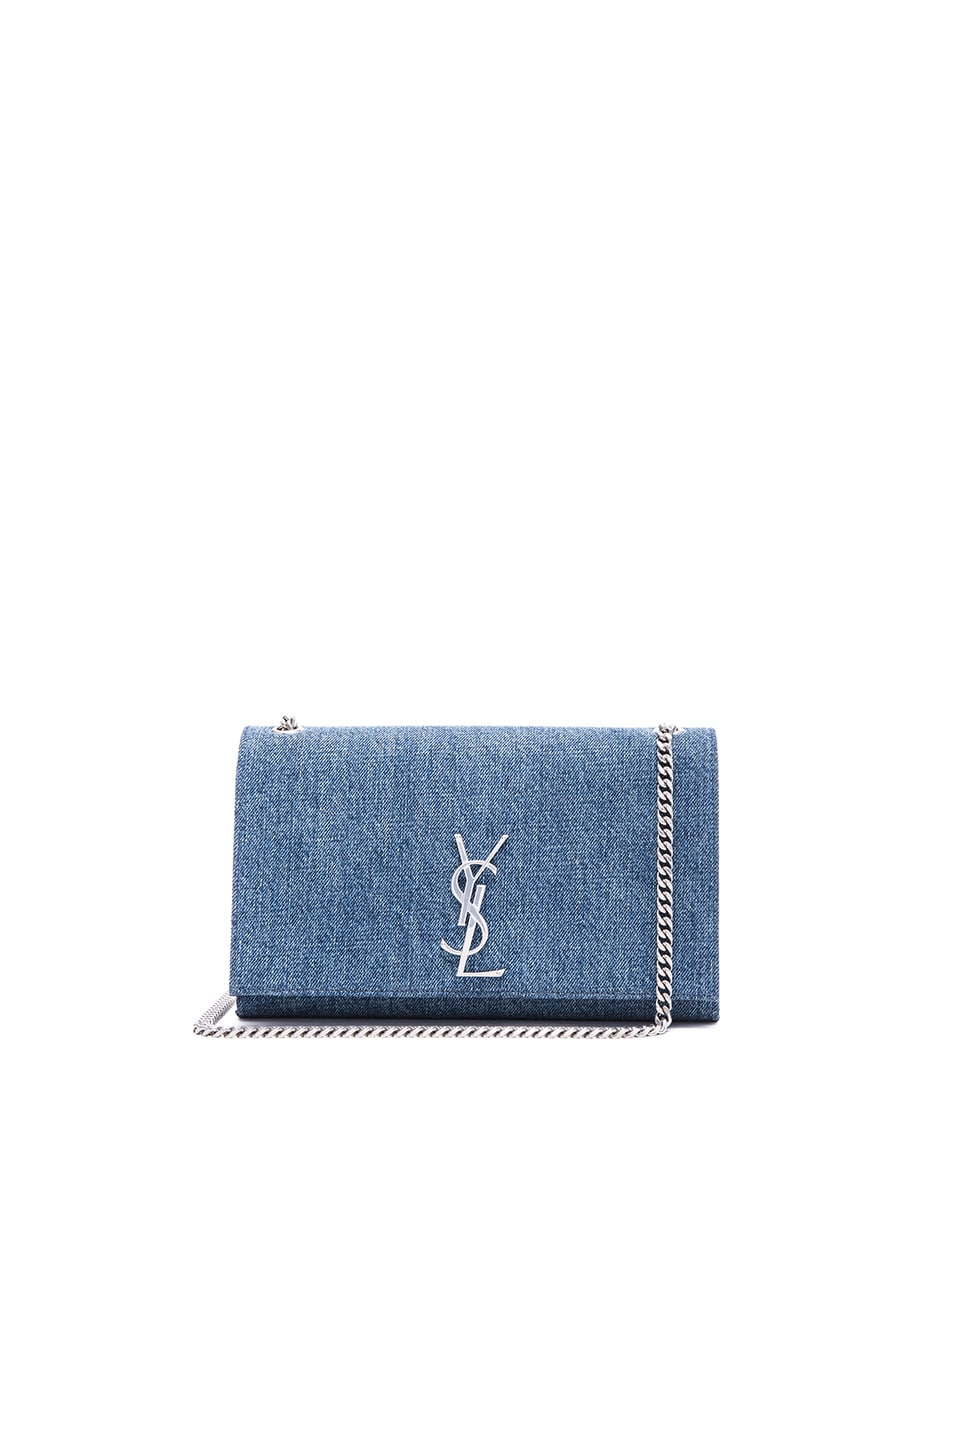 Image 1 of Saint Laurent Medium Denim Monogramme Chain Bag in Dirty Light Blue & Black